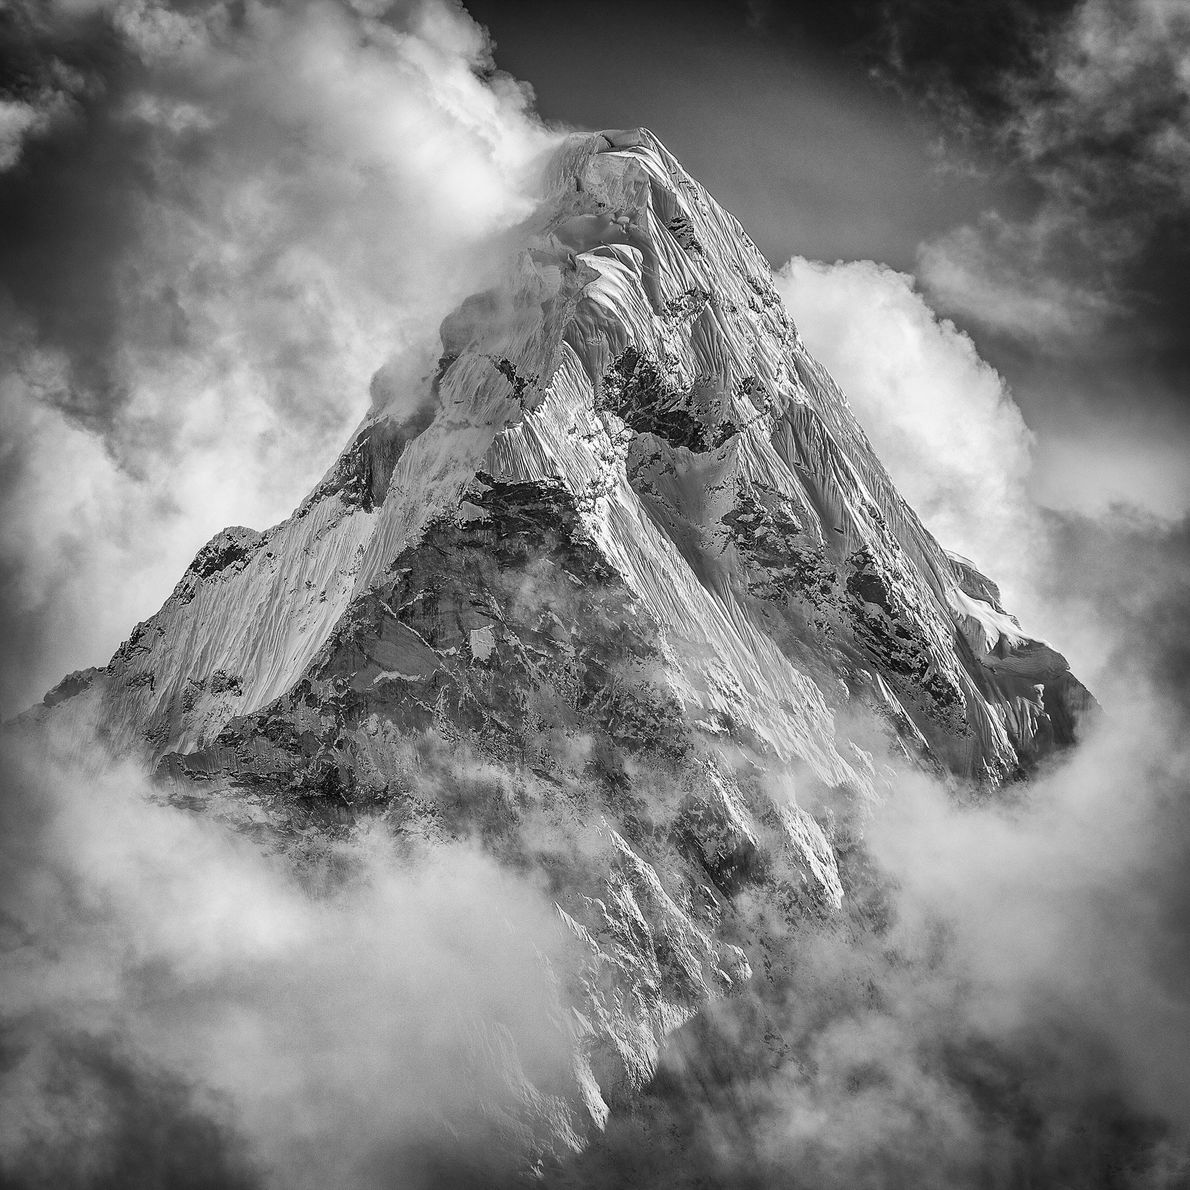 Clouds circle the peak of Mount Everest, the world's tallest mountain at 29,035 feet.